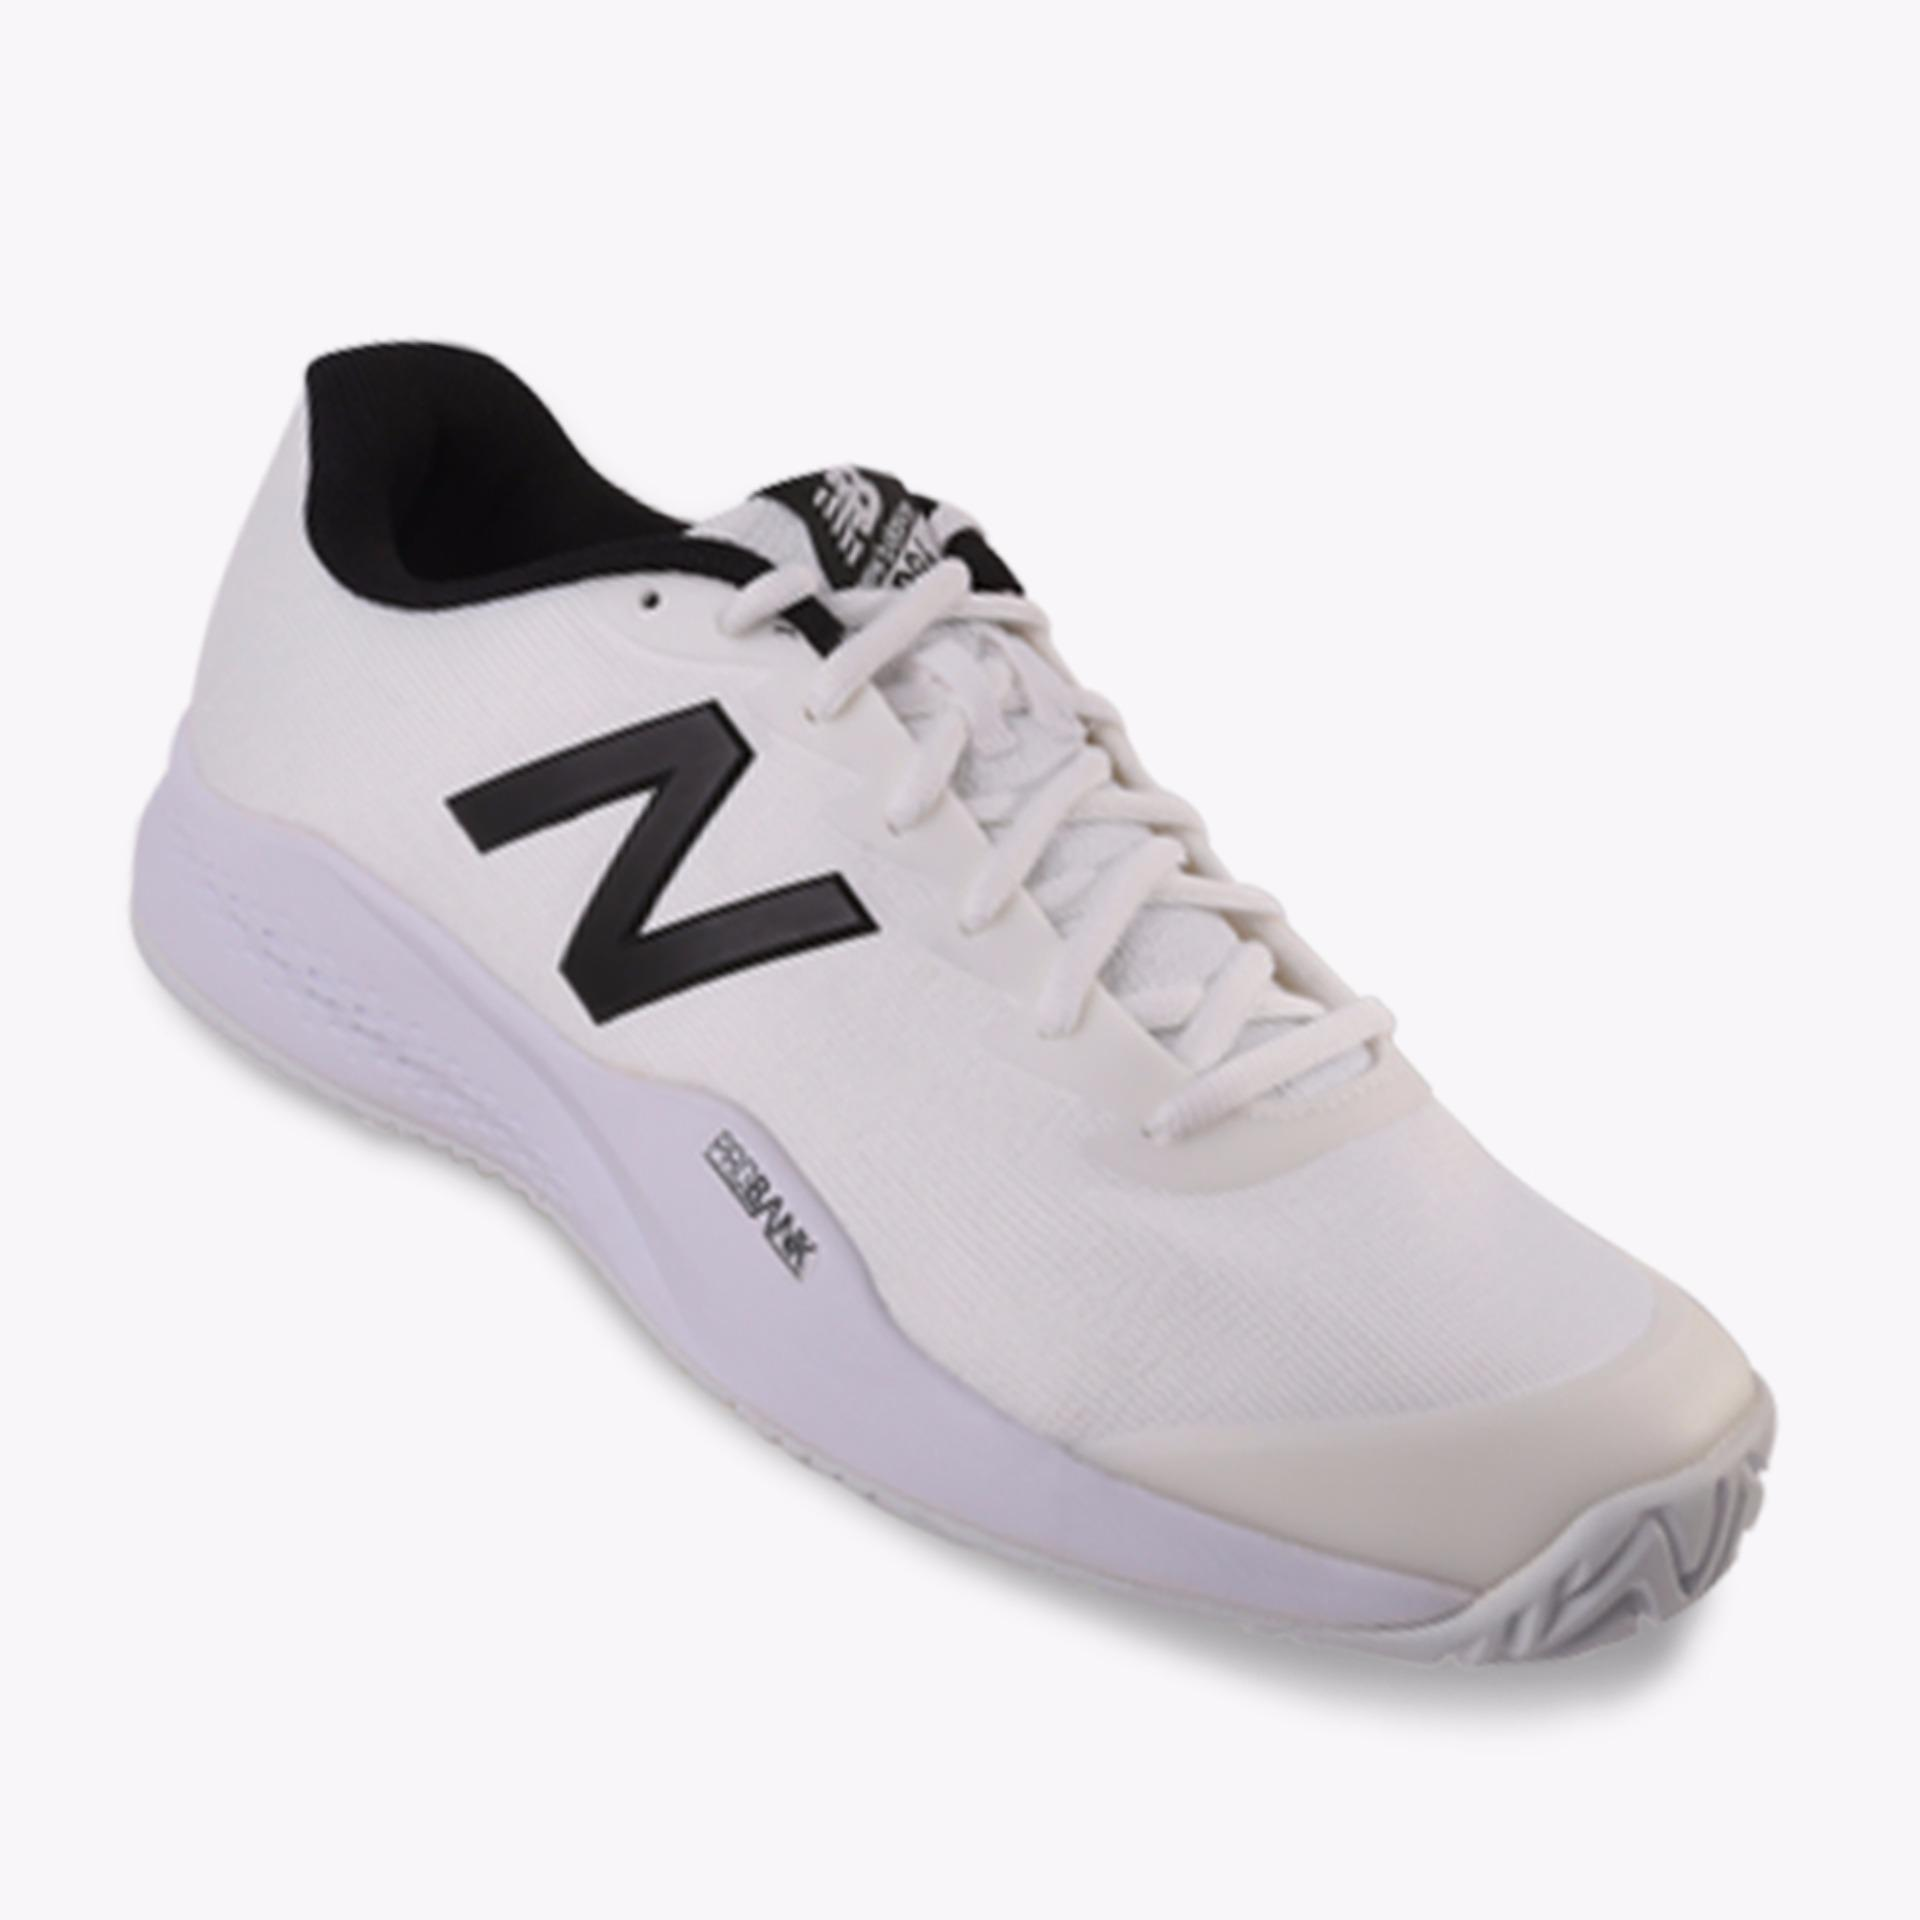 Spesifikasi New Balance 996V3 Men S Tennis Shoes Putih Merk New Balance